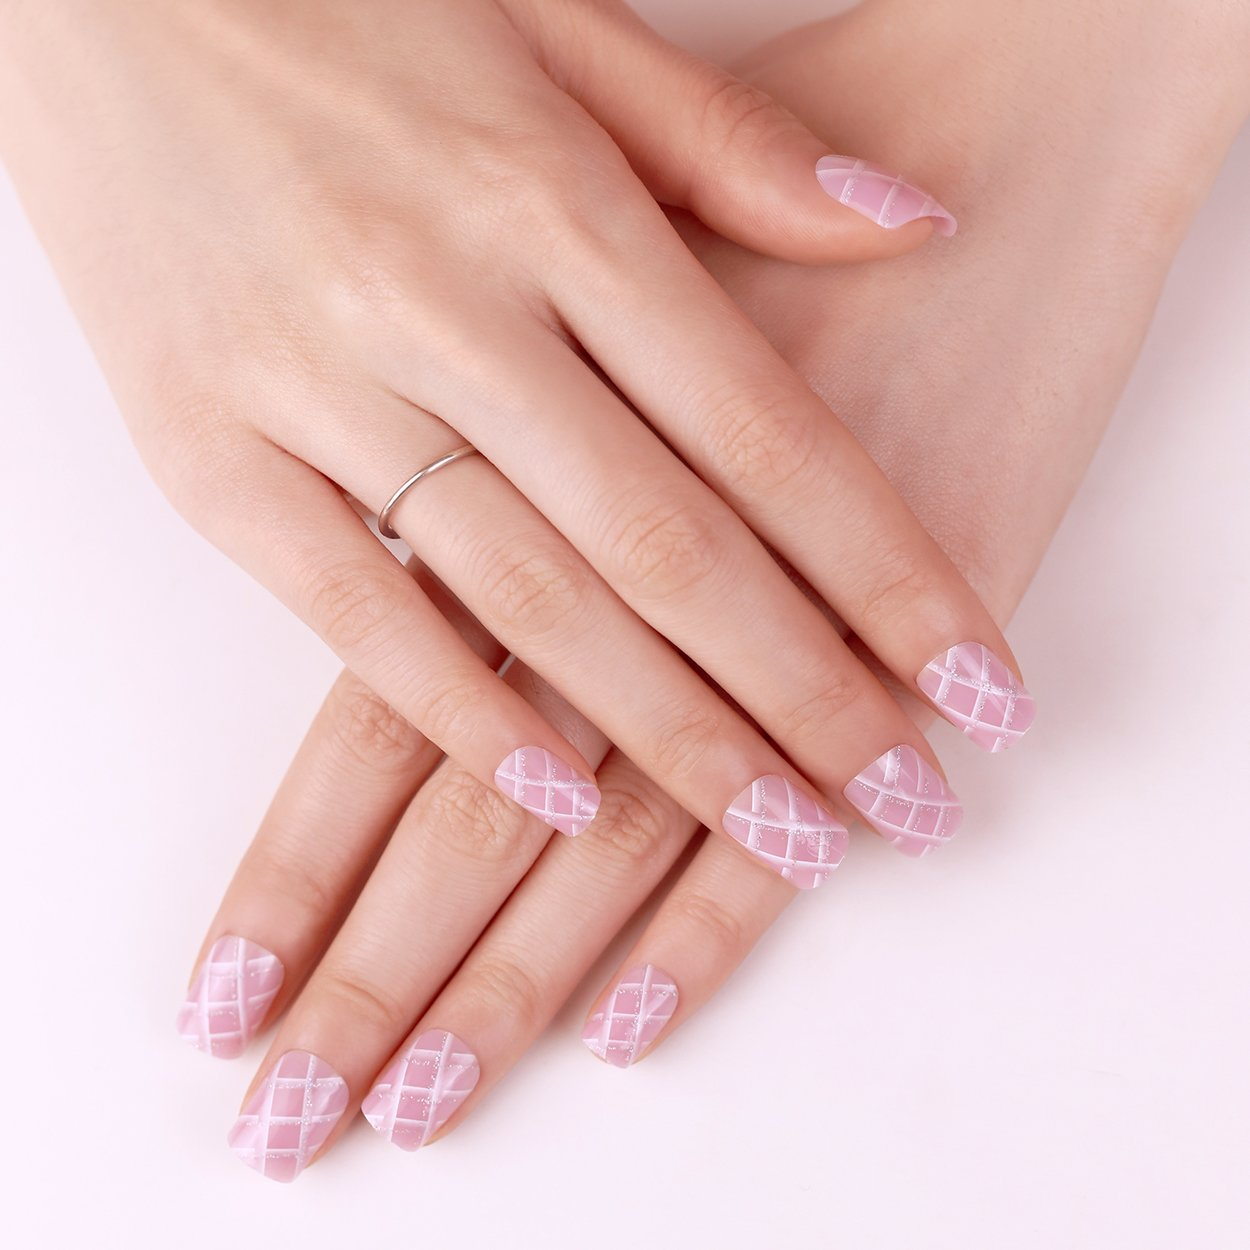 ARTPLUS Kit de uñas postizas media funda de Full con pegamento 24pcs Rosa Criss Cross falsas uñas: Amazon.es: Belleza